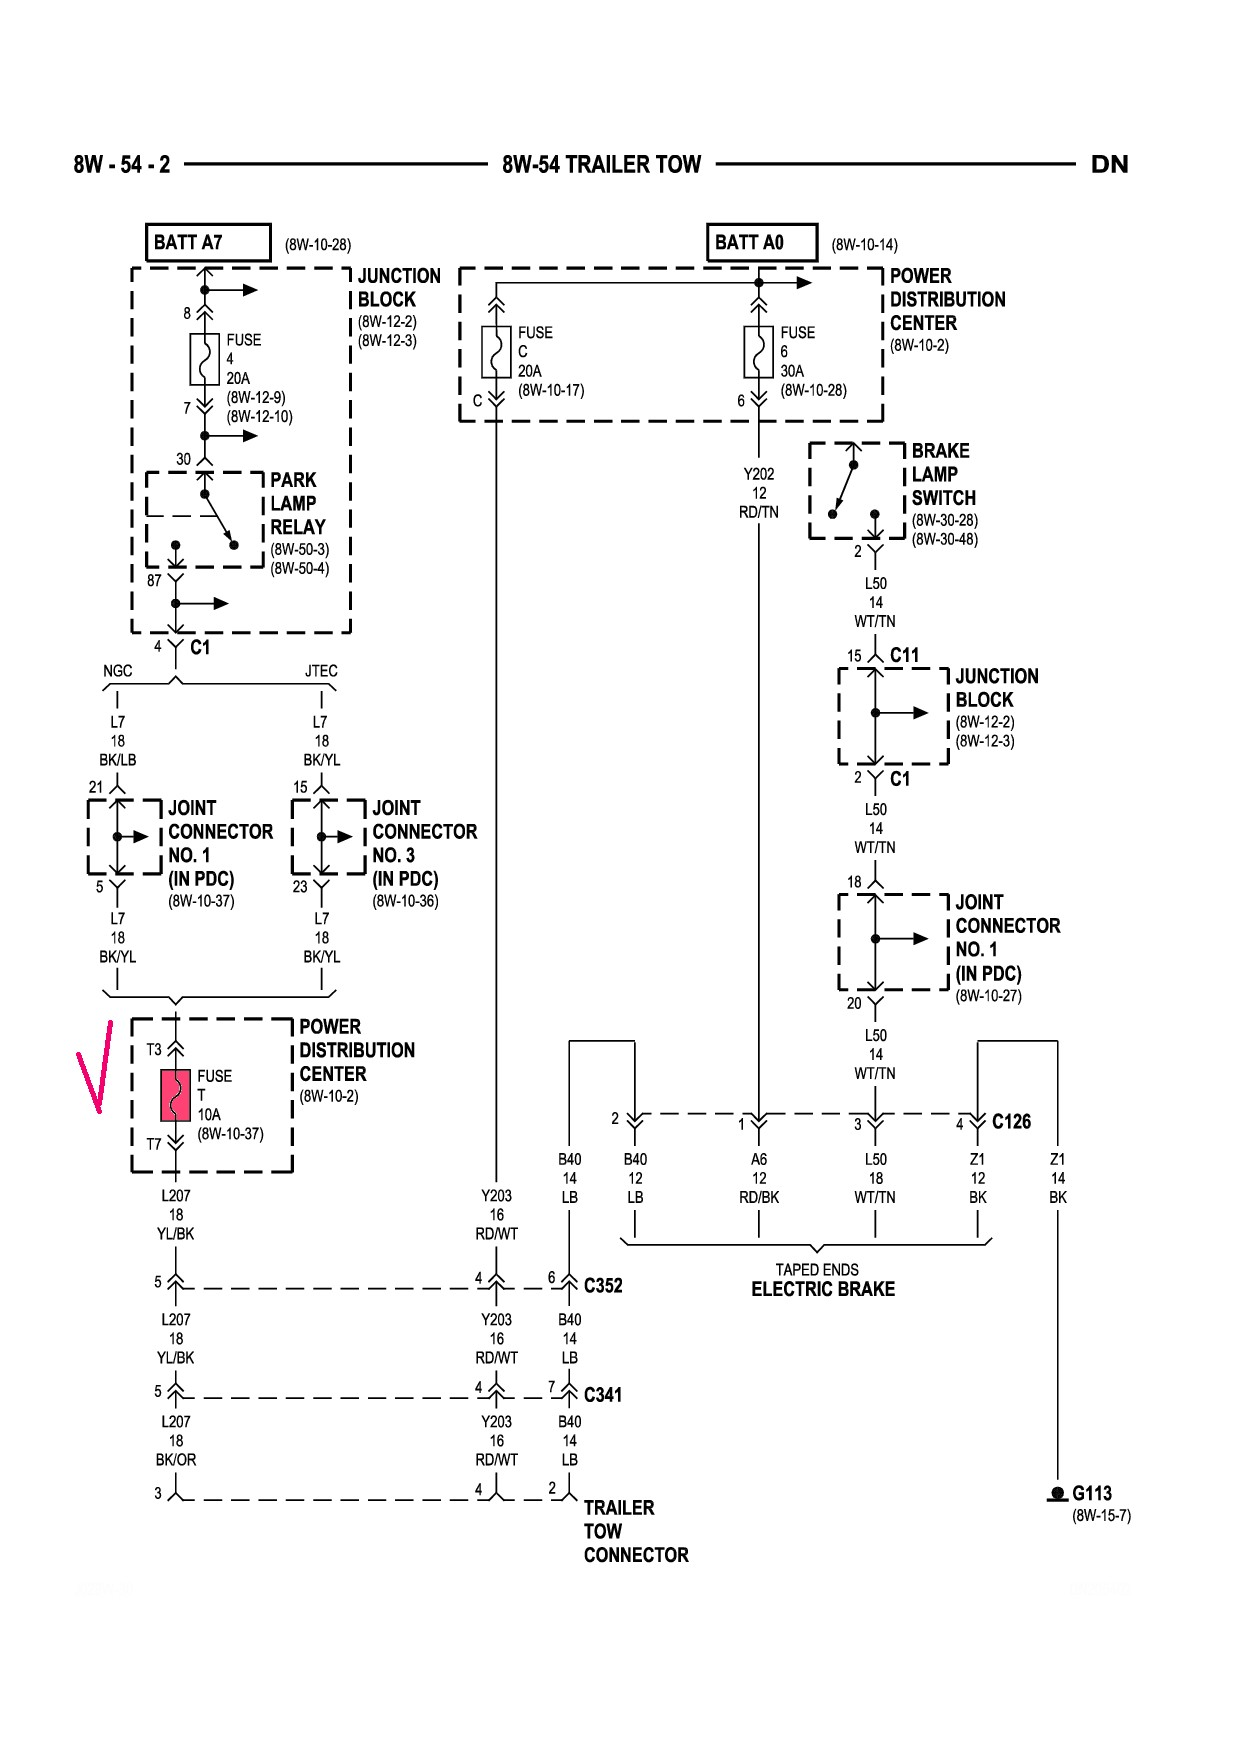 2000 Dodge Durango Engine Diagram Best Dodge Durango Wiring Diagram Ideas Everything You Need to Of 2000 Dodge Durango Engine Diagram